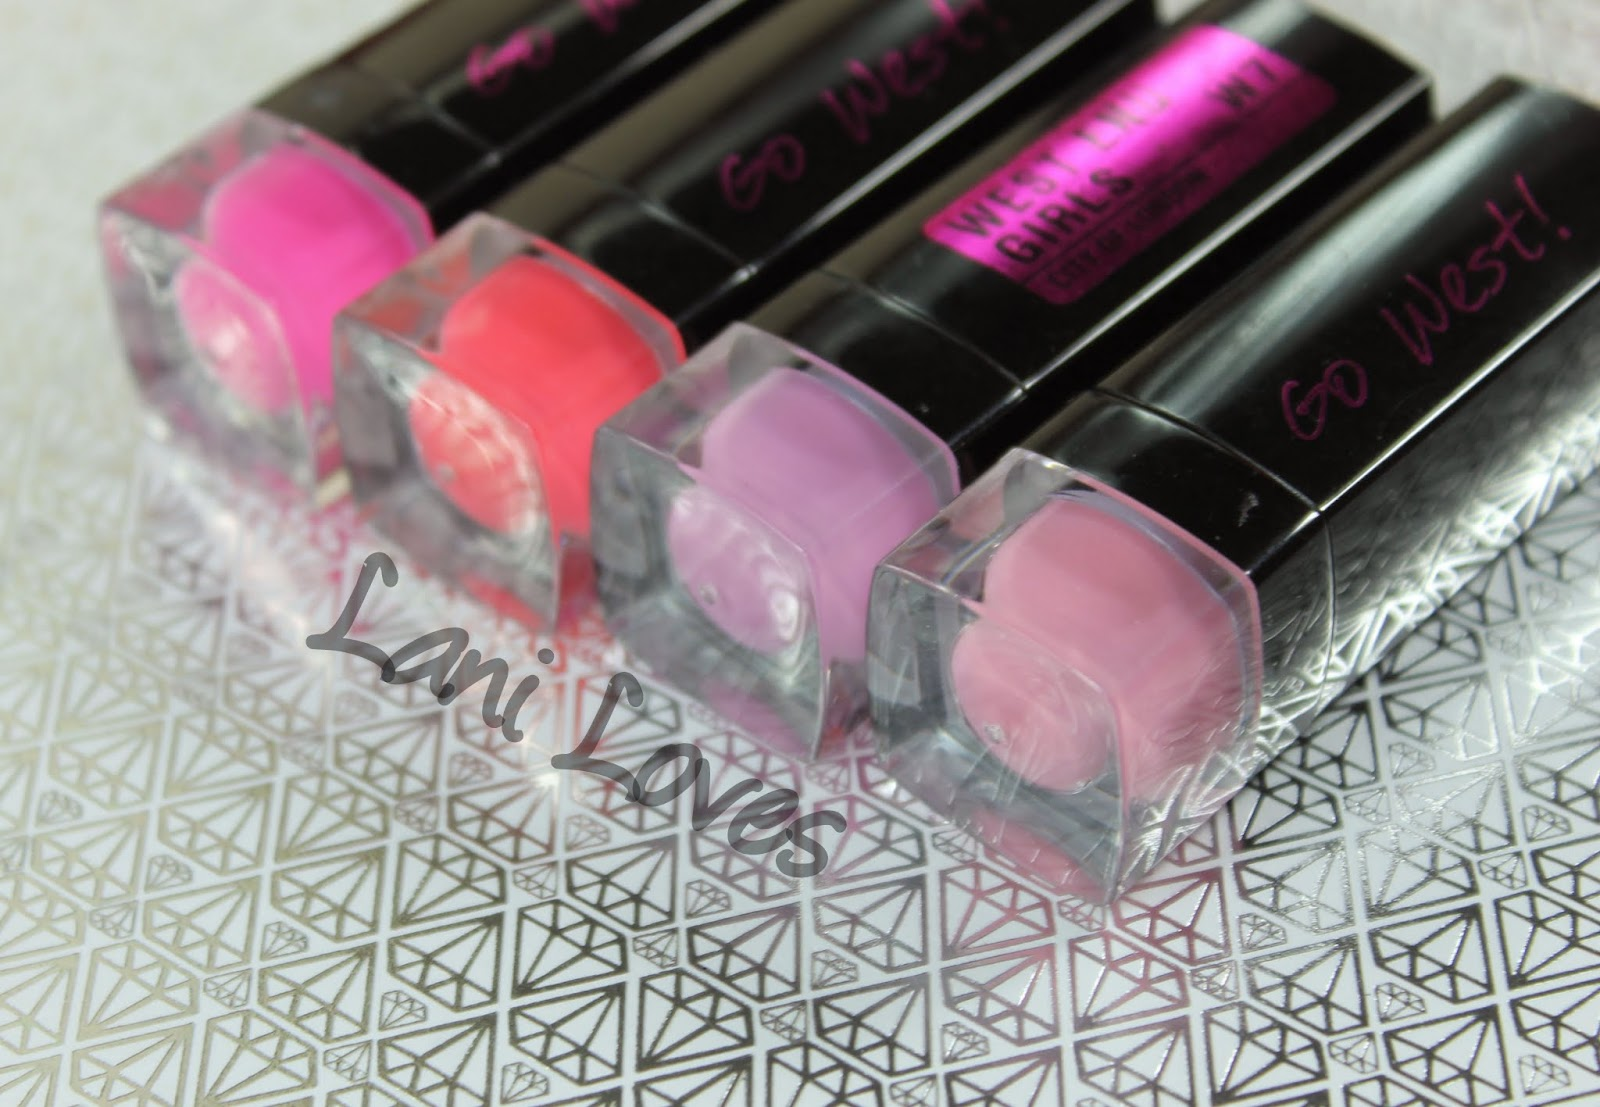 W7 Go West! Matte & West End Girls Lipstick - Pink Candy, Powder Pink, Perfect Pink & Impulse Buy Swatches & Review